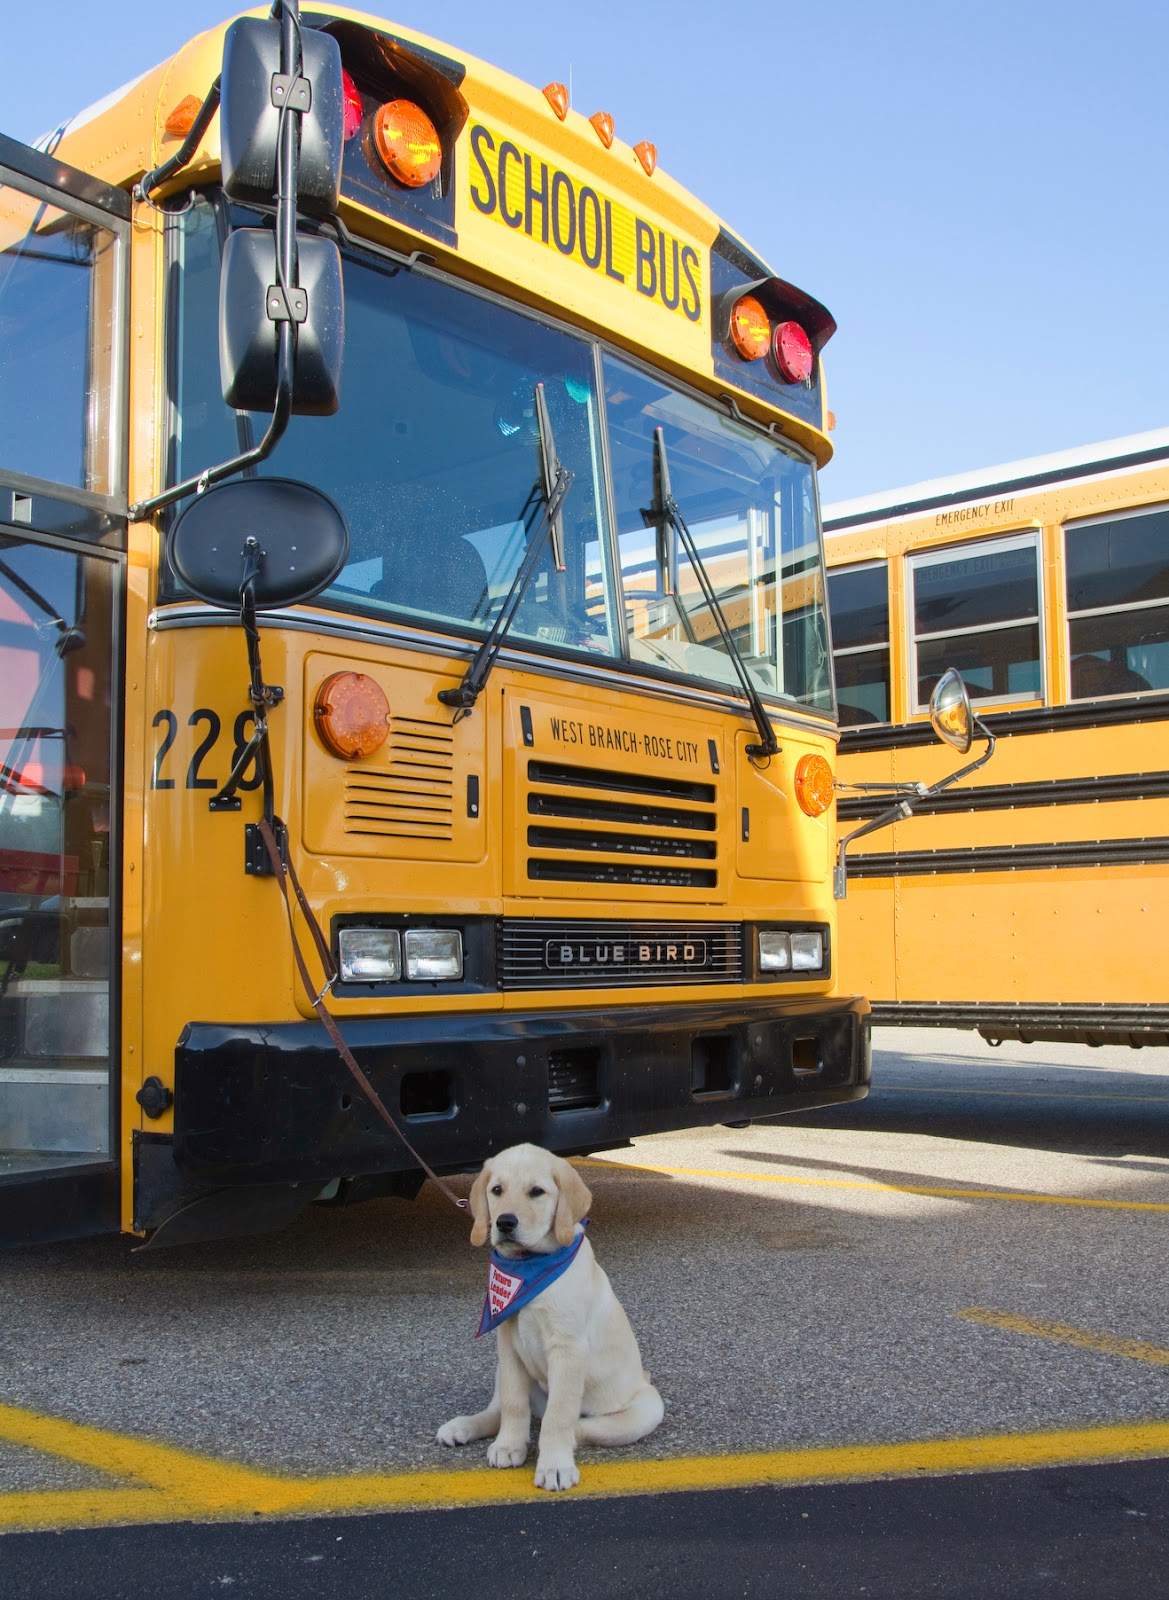 A small yellow golden retriever/lab mix puppy is sitting down in front of a large yellow school bus. His leash is attached to the bus's mirror strut. The puppy is looking at the camera and wearing the blue Future Leader Dog bandana. He is sitting lite a puppy with his back legs all askew.